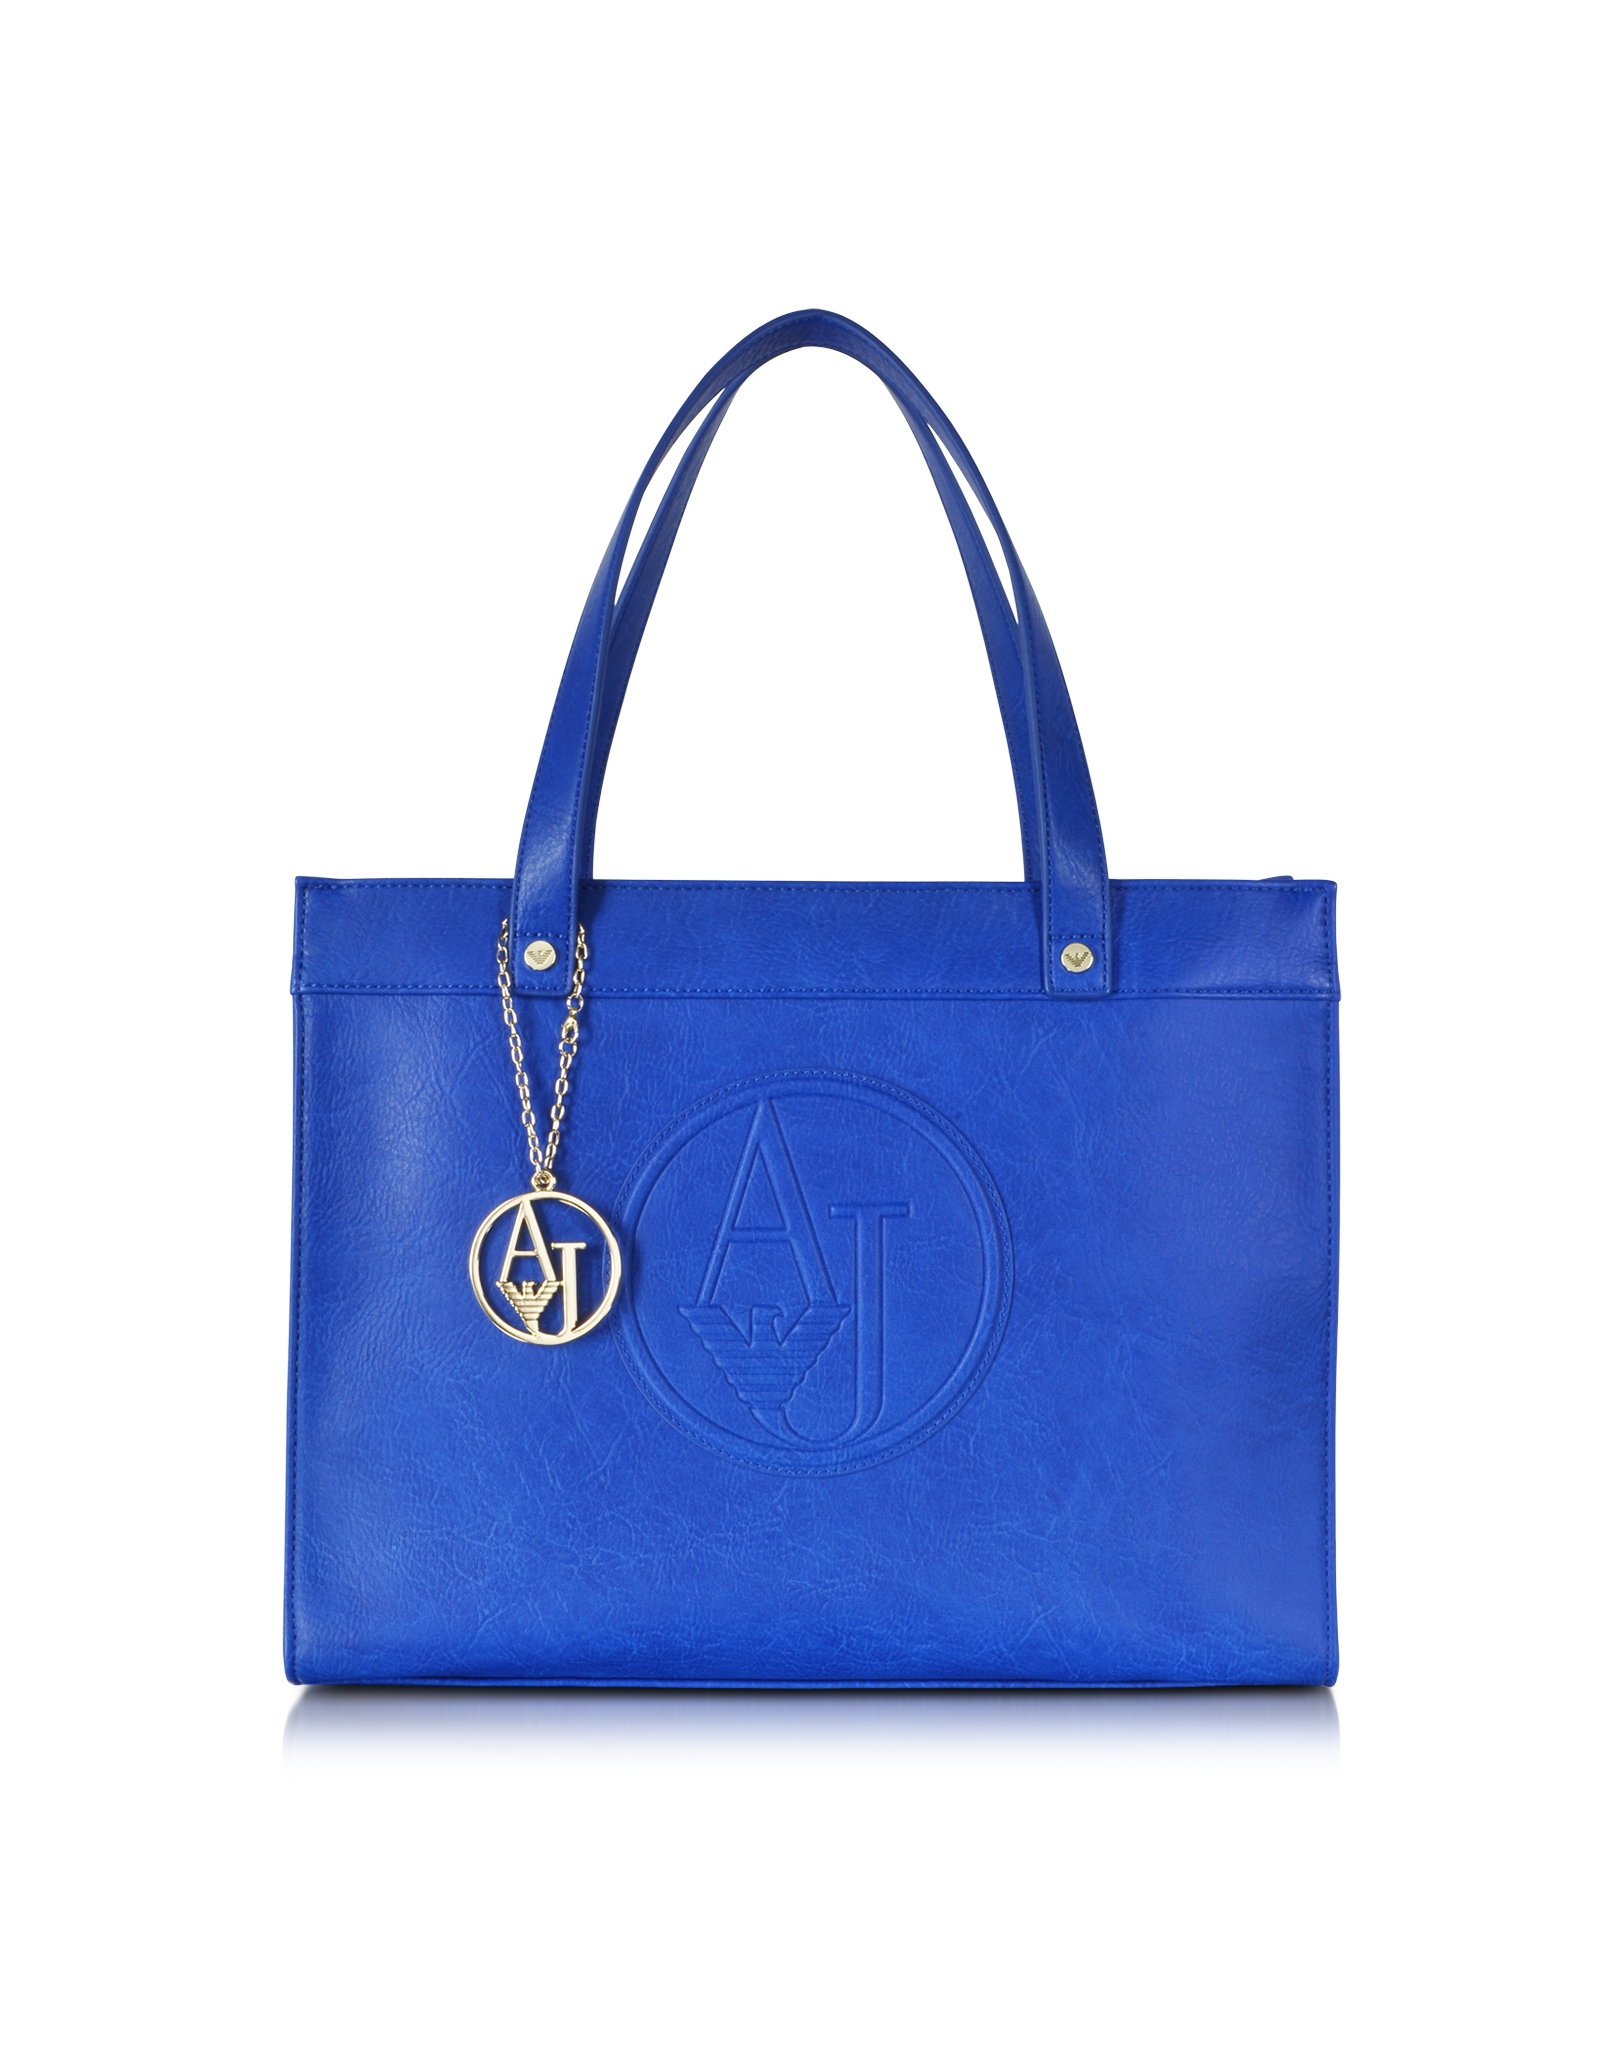 Armani Jeans Eco Leather Medium Tote Bag in Blue (Royal Blue)